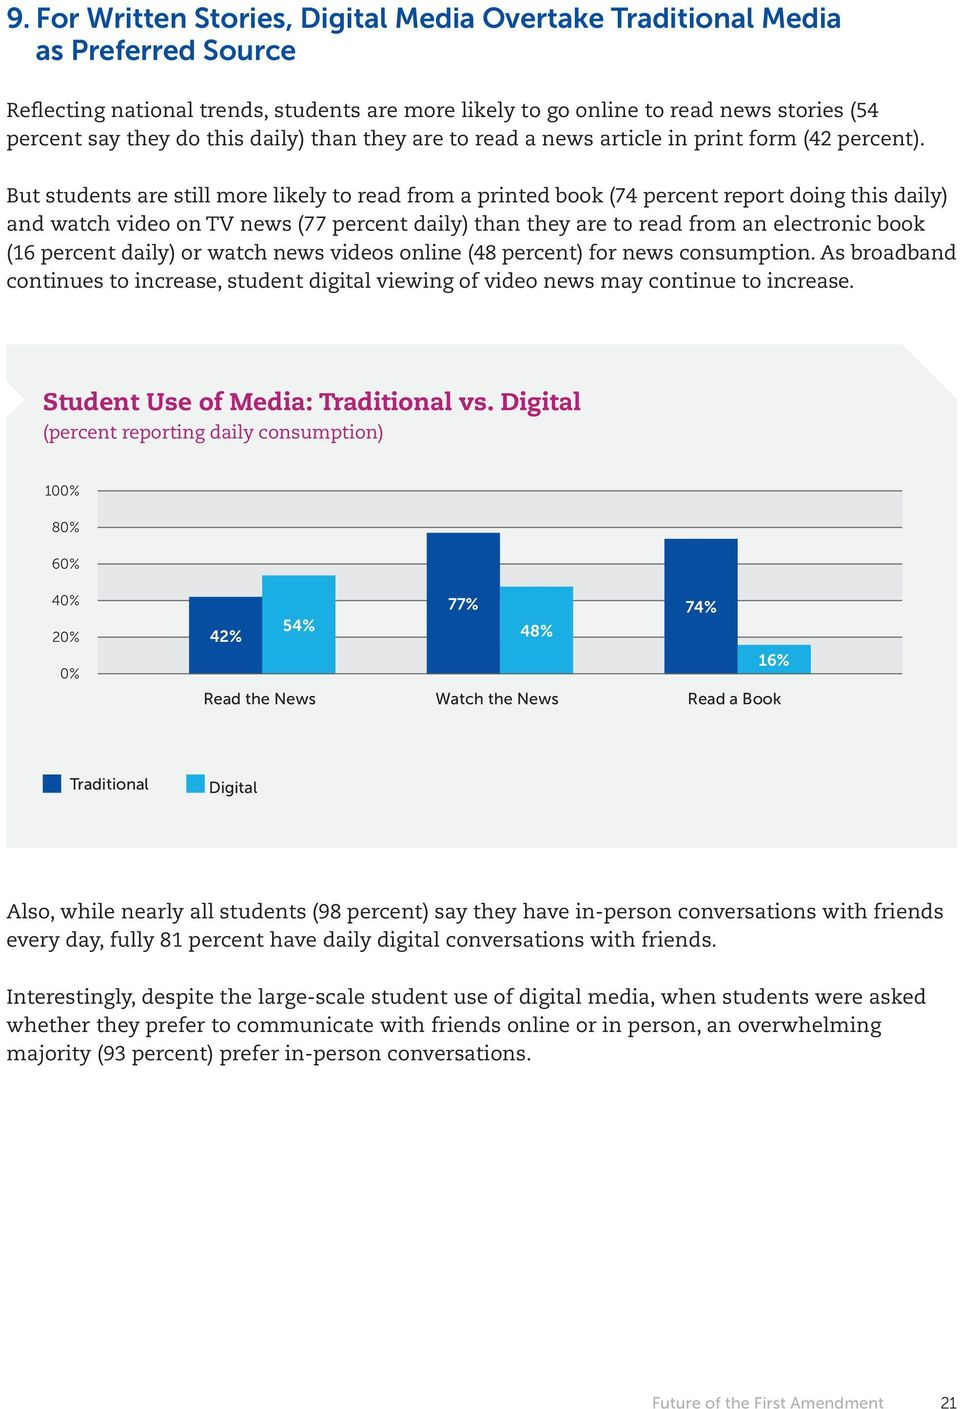 But students are still more likely to read from a printed book (74 percent report doing this daily) and watch video on TV news (77 percent daily) than they are to read from an electronic book (16